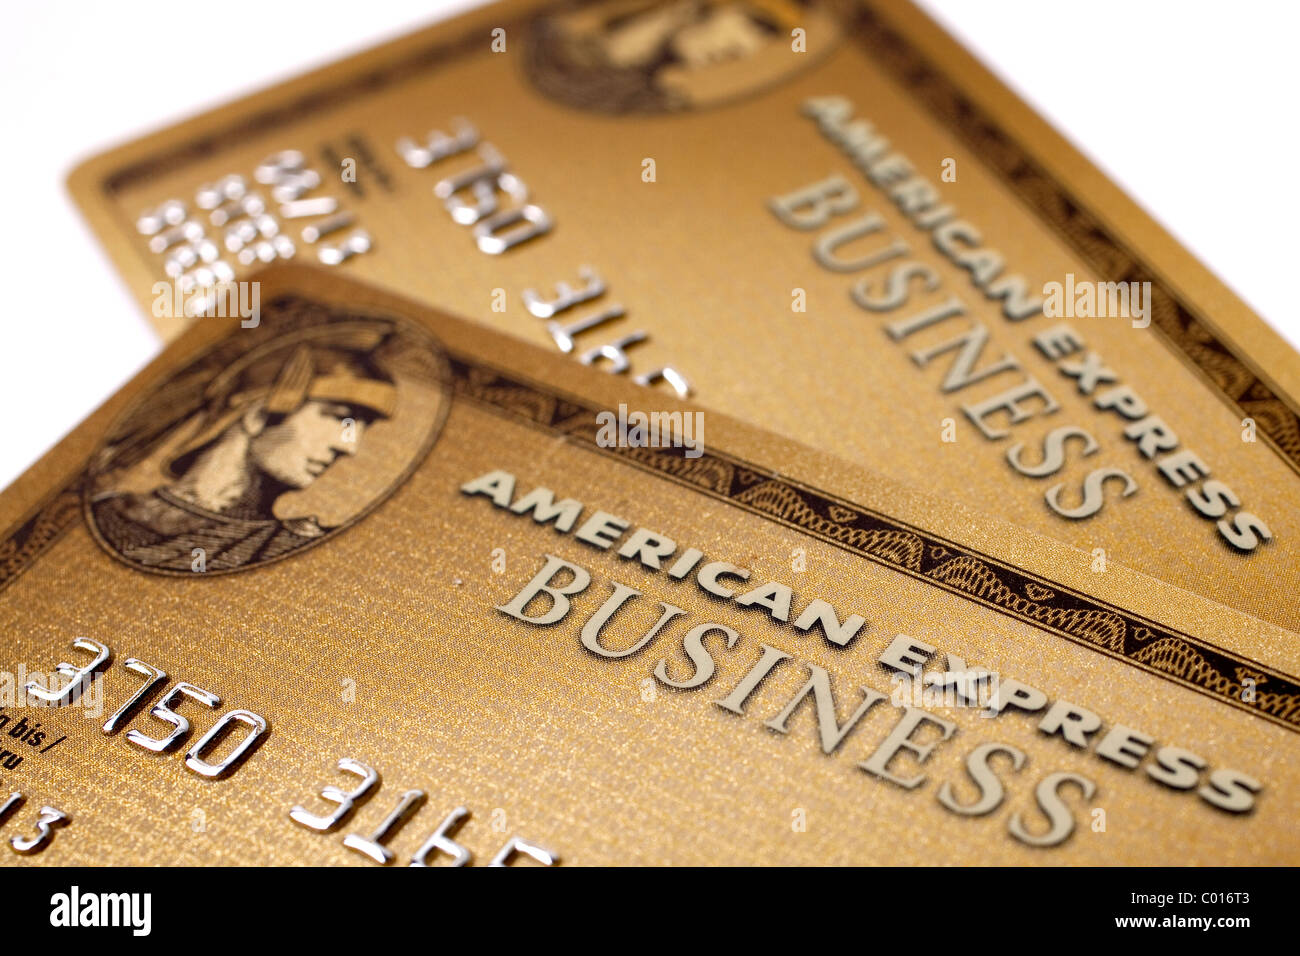 American Express Gold Card Stock Photos & American Express Gold Card ...